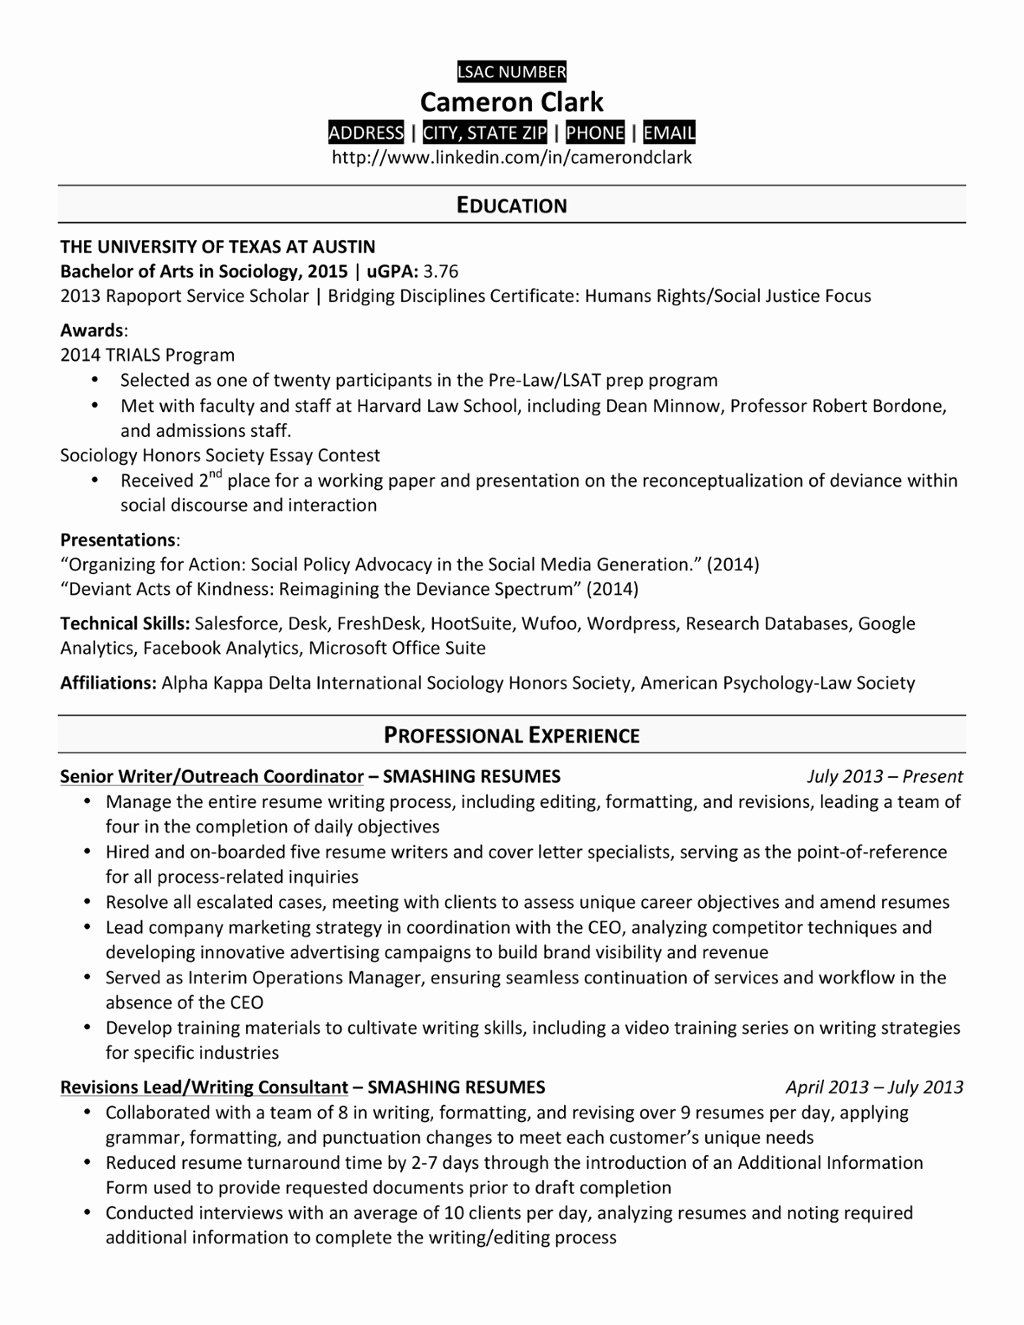 Graduate School Resume Template Unique A Law School Resume that Made the Cut